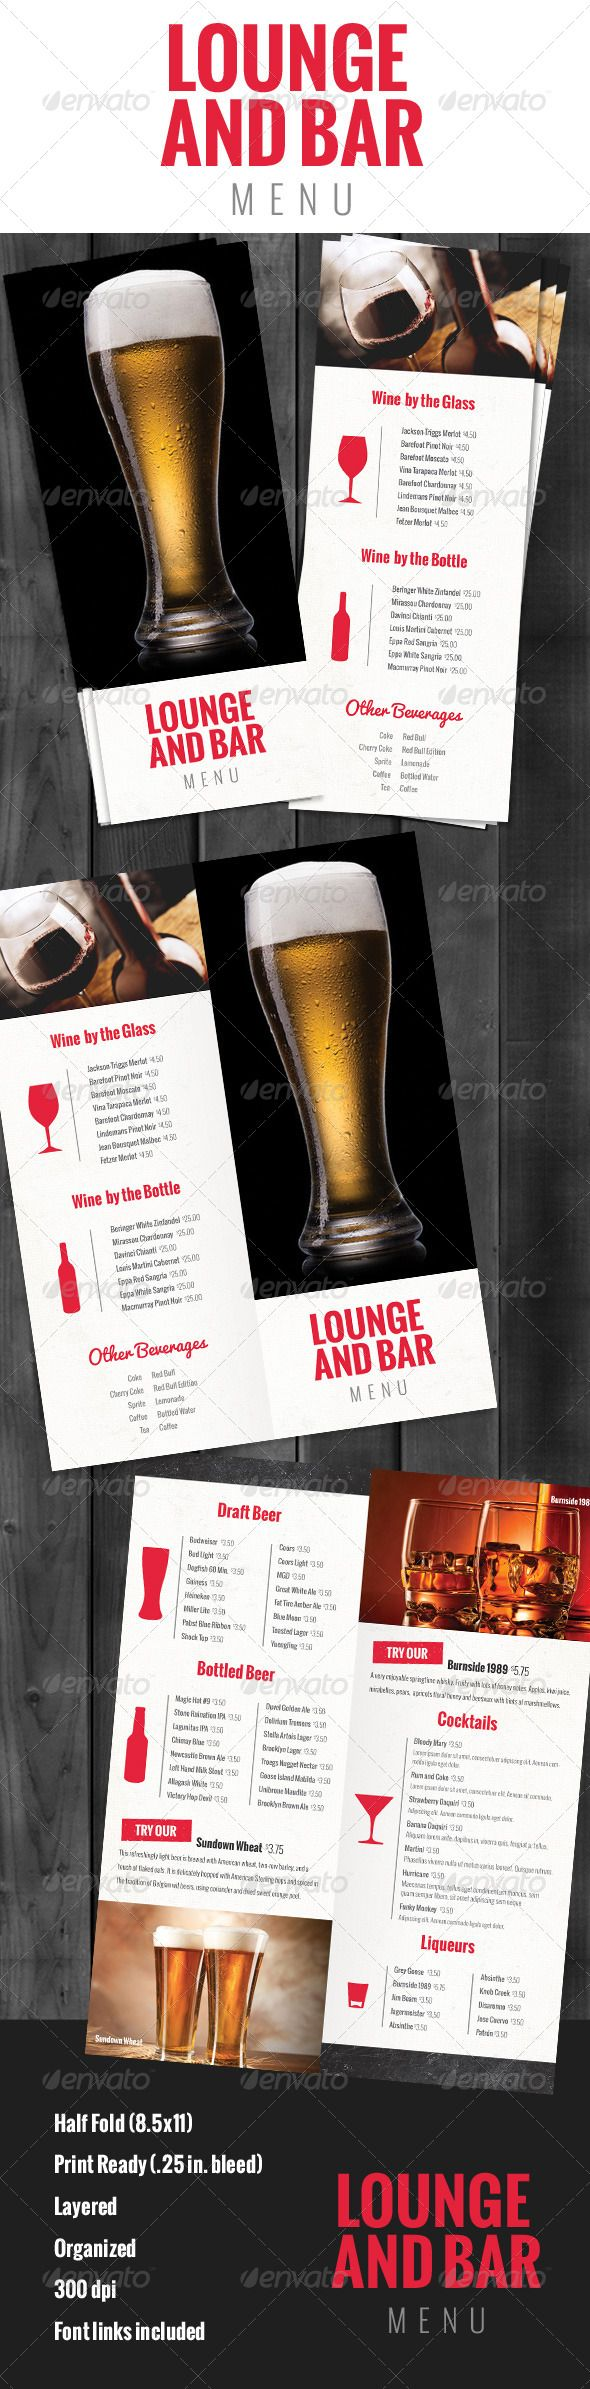 fax cover letter word template%0A Lounge Bar Drink Menu Drink Menu Menu And Print Templates   baf a f    ed c      e f f  ab